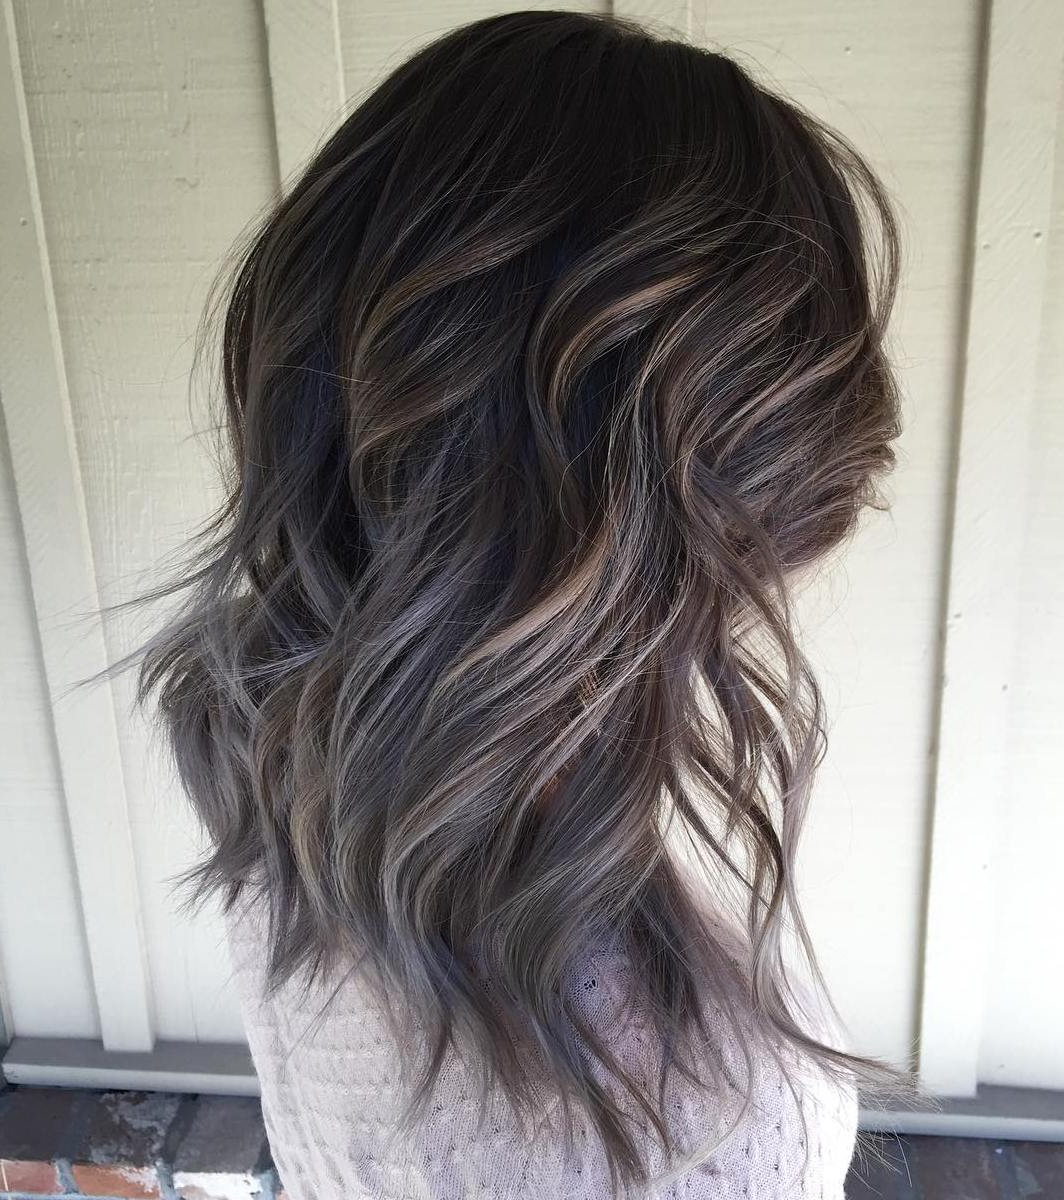 Most Recently Released Easy Side Downdo Hairstyles With Caramel Highlights With Regard To 60 Ideas Of Gray And Silver Highlights On Brown Hair (View 10 of 20)